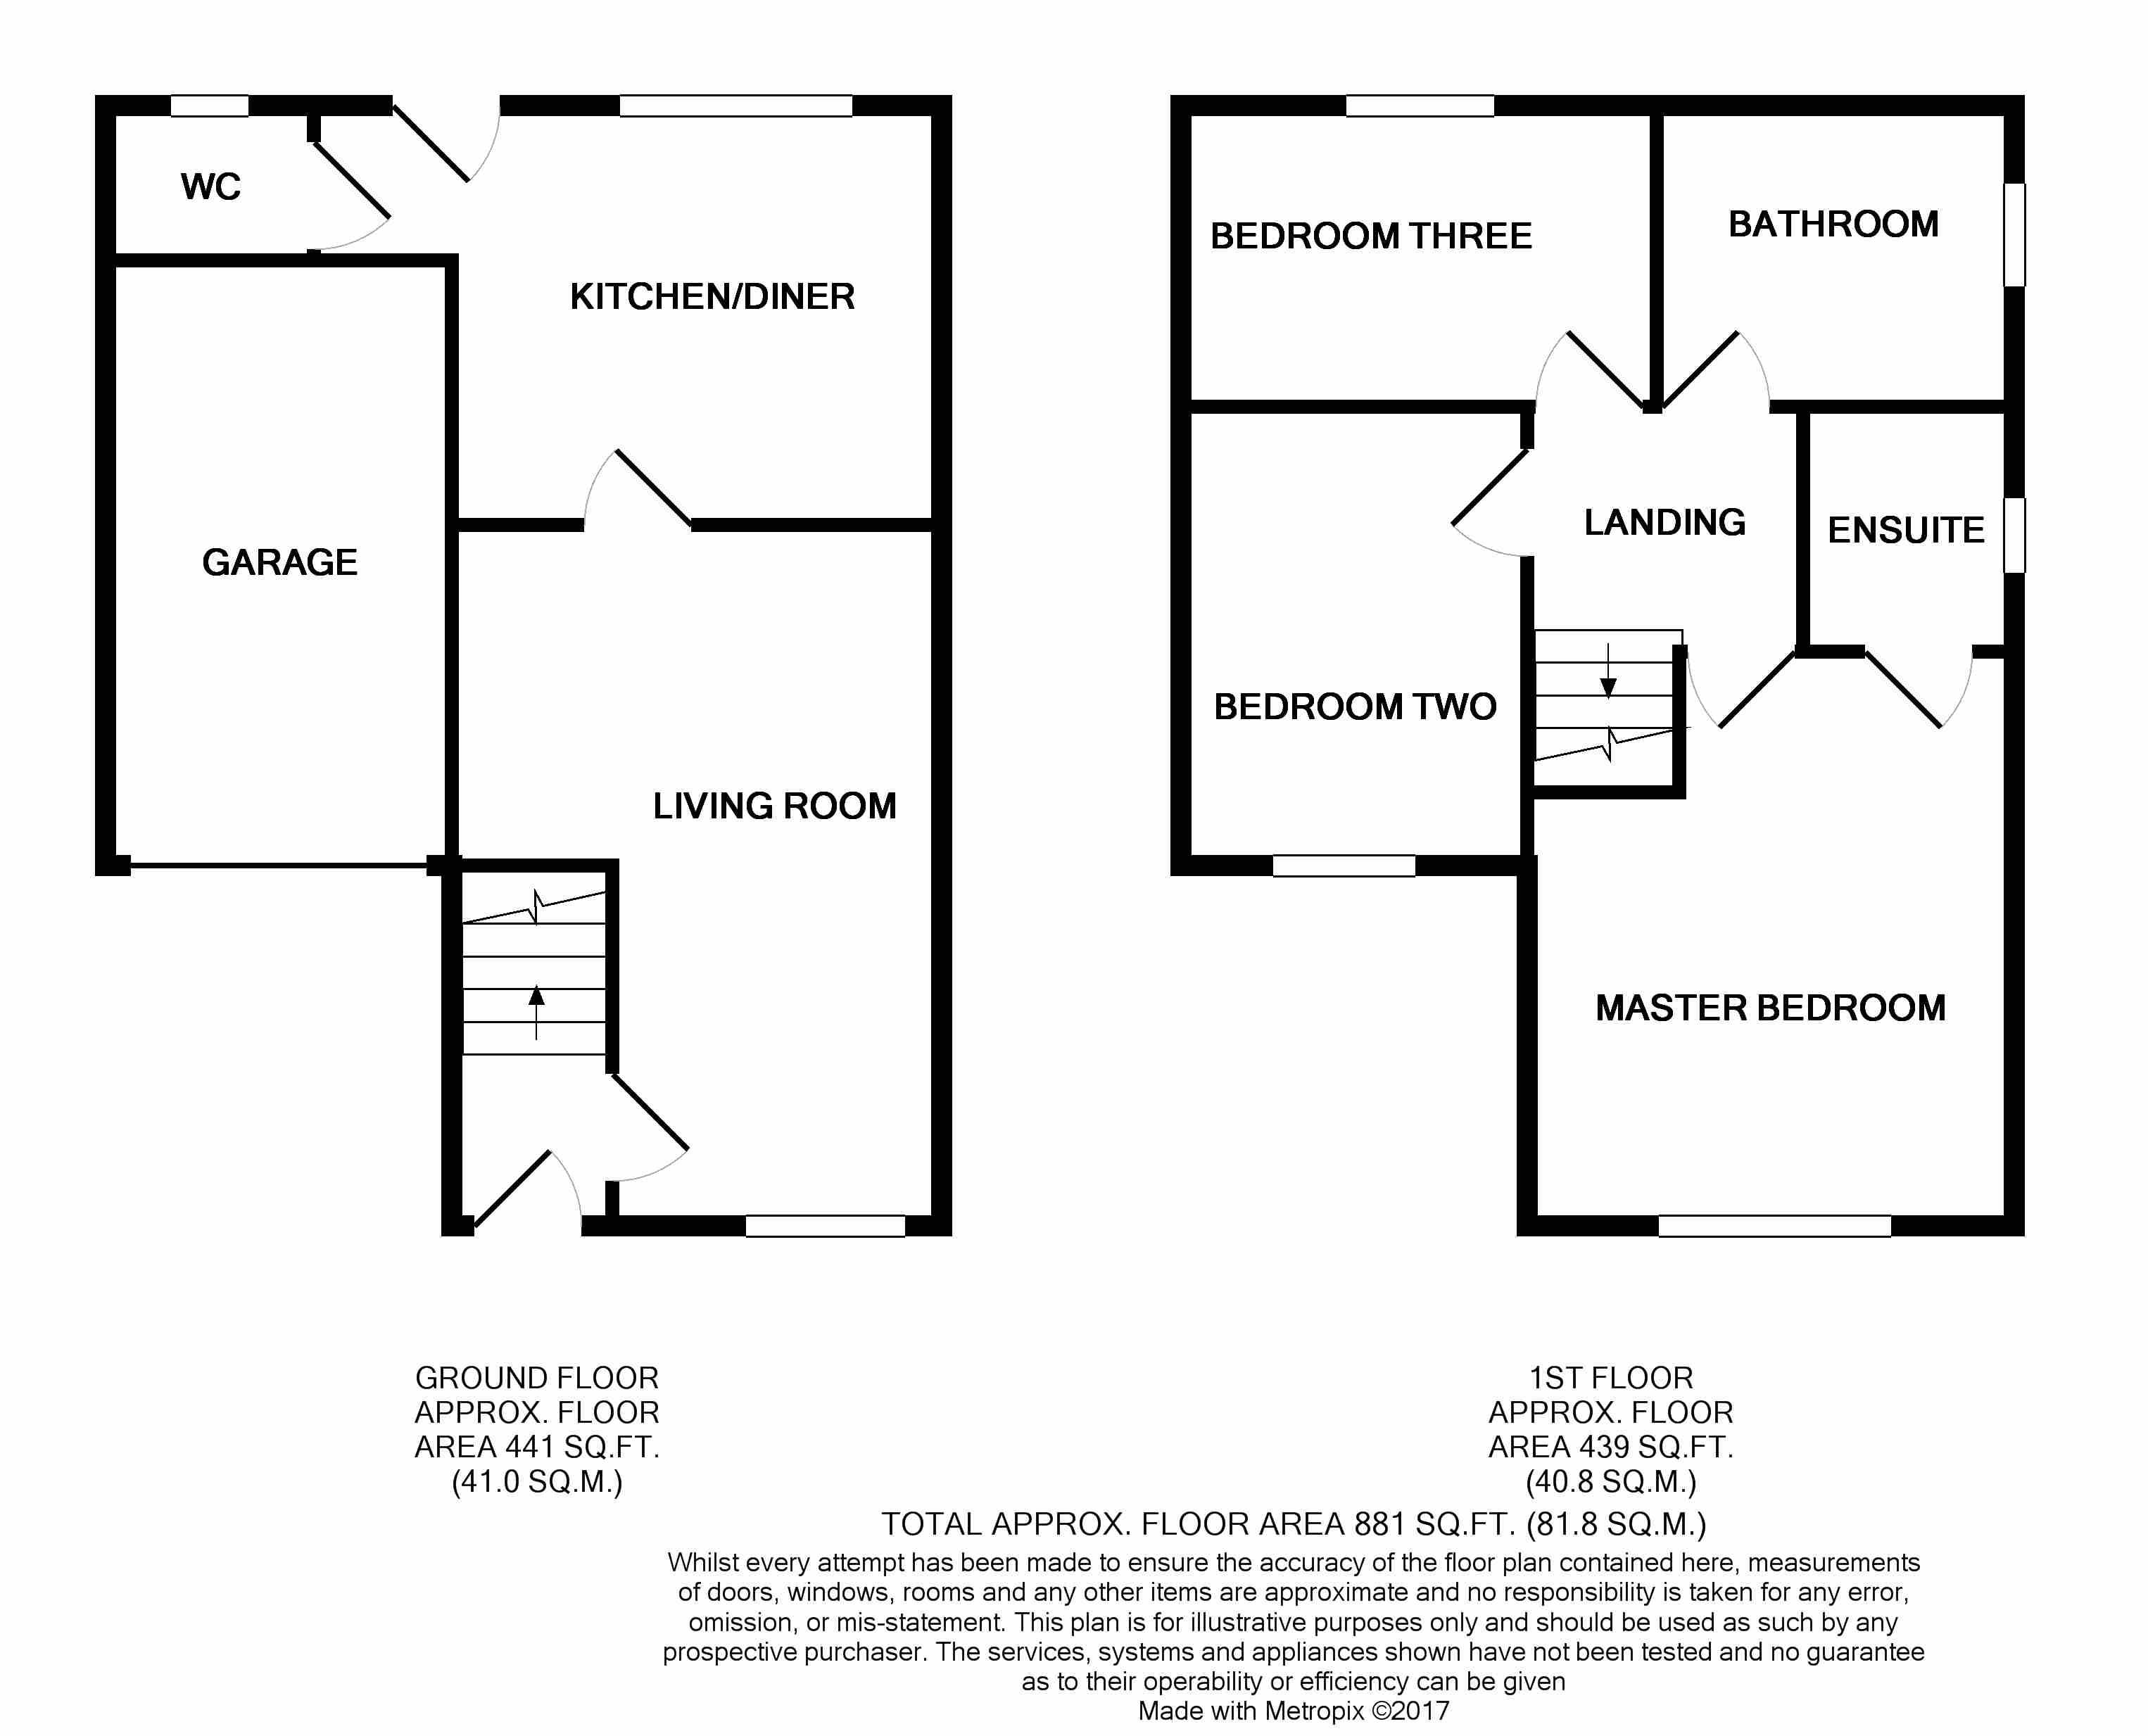 Walton crescent st helen auckland bishop auckland dl14 for Walton house floor plan